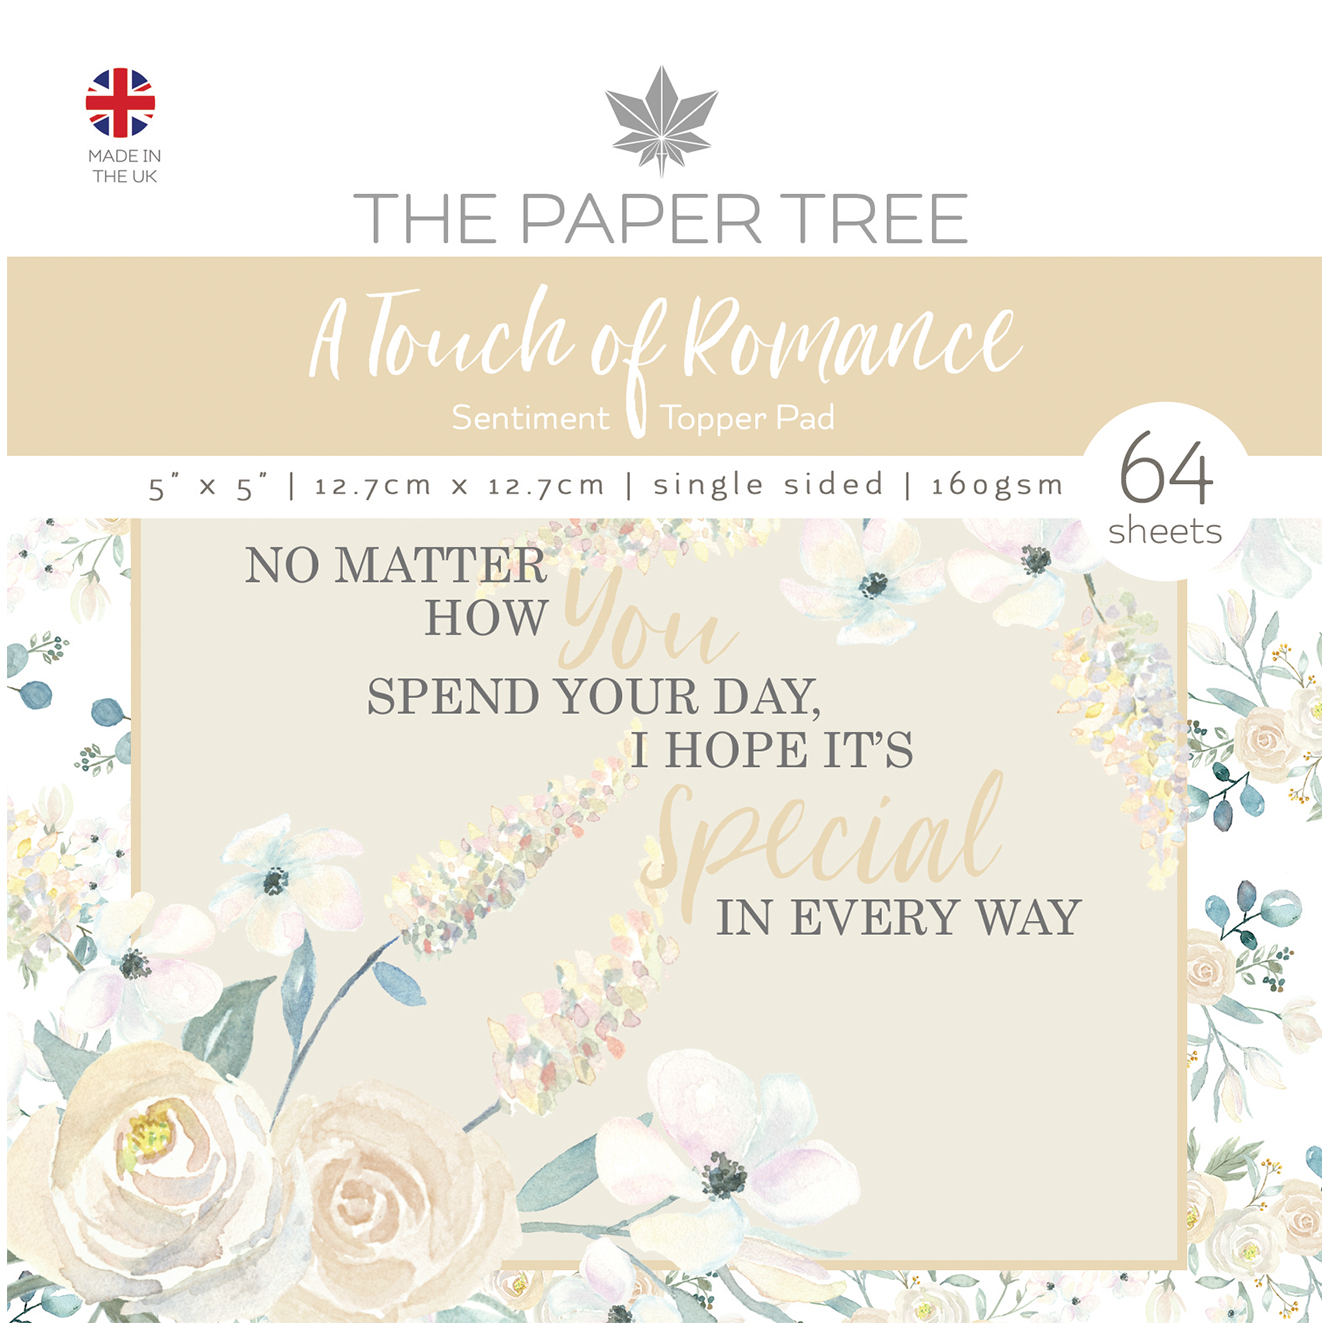 The Paper Tree A Touch of Romance 5″ x 5″ Sentiment Topper Pad